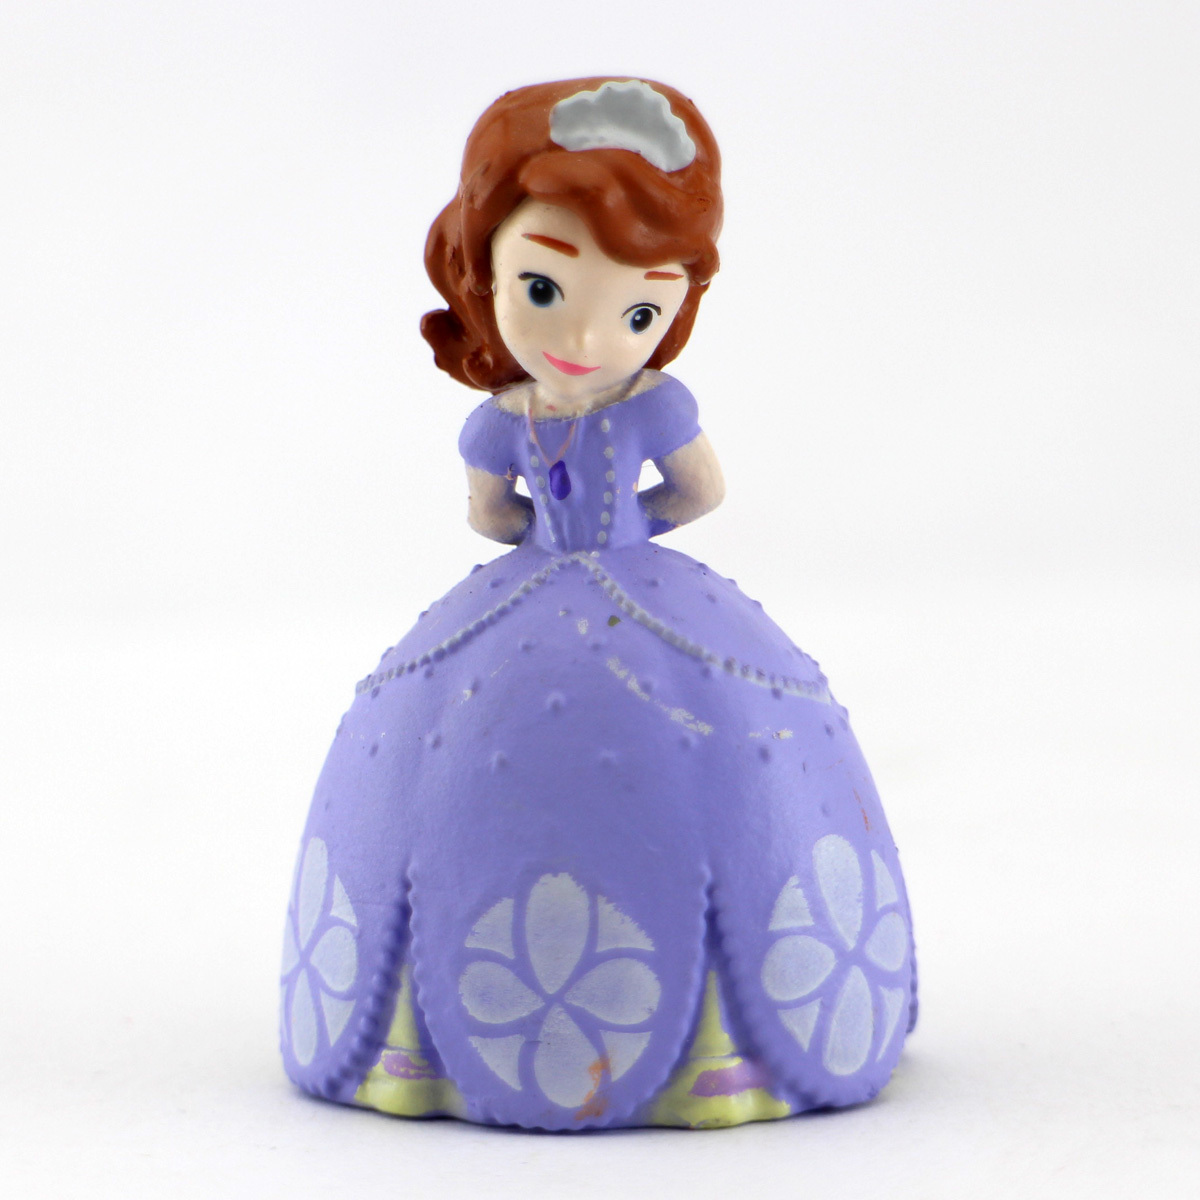 Disny Princess Toy